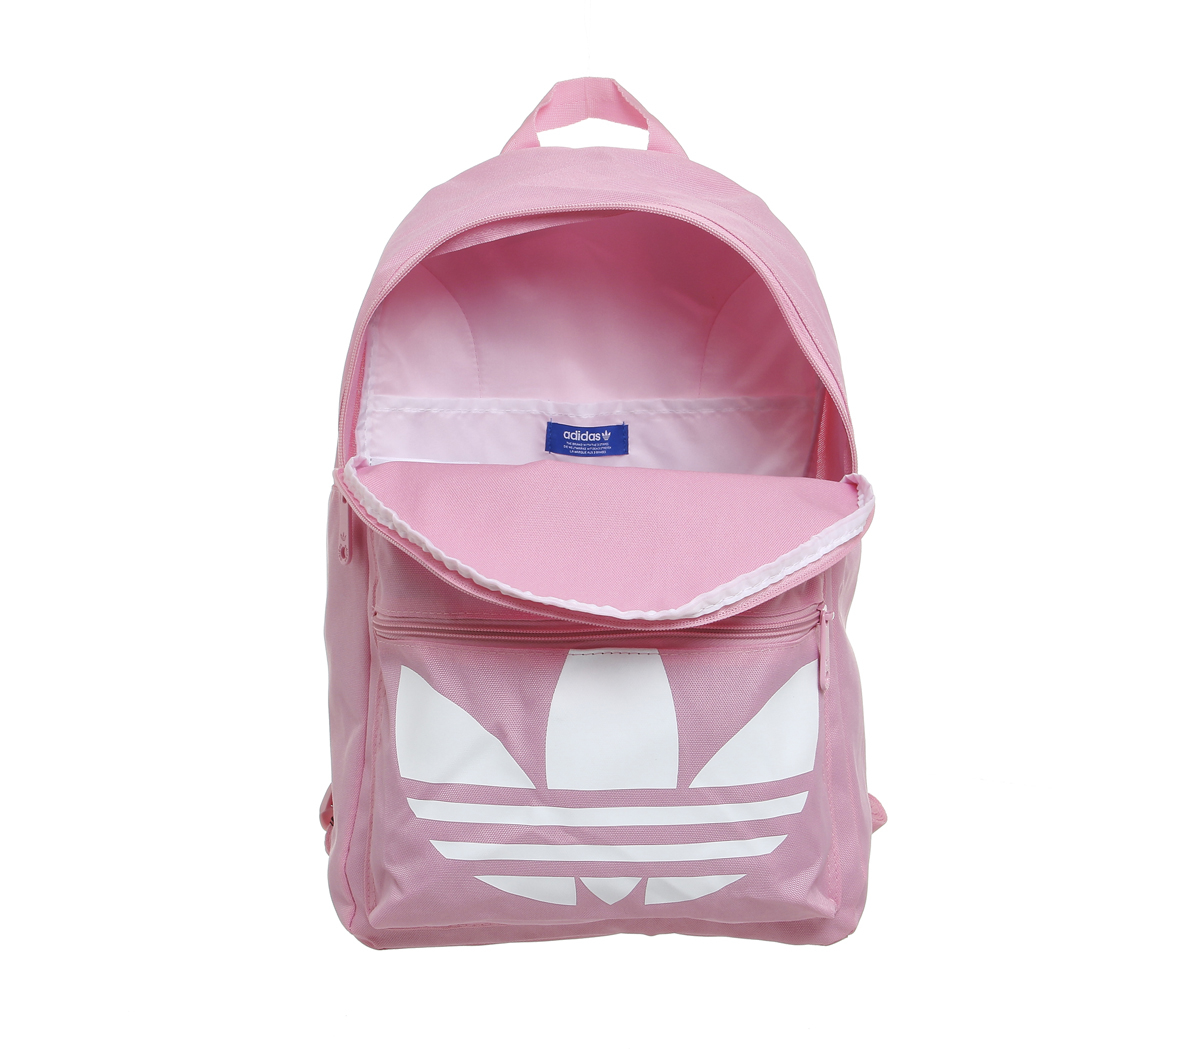 502613675f Lyst - adidas Originals Trefoil Canvas Backpack in Pink